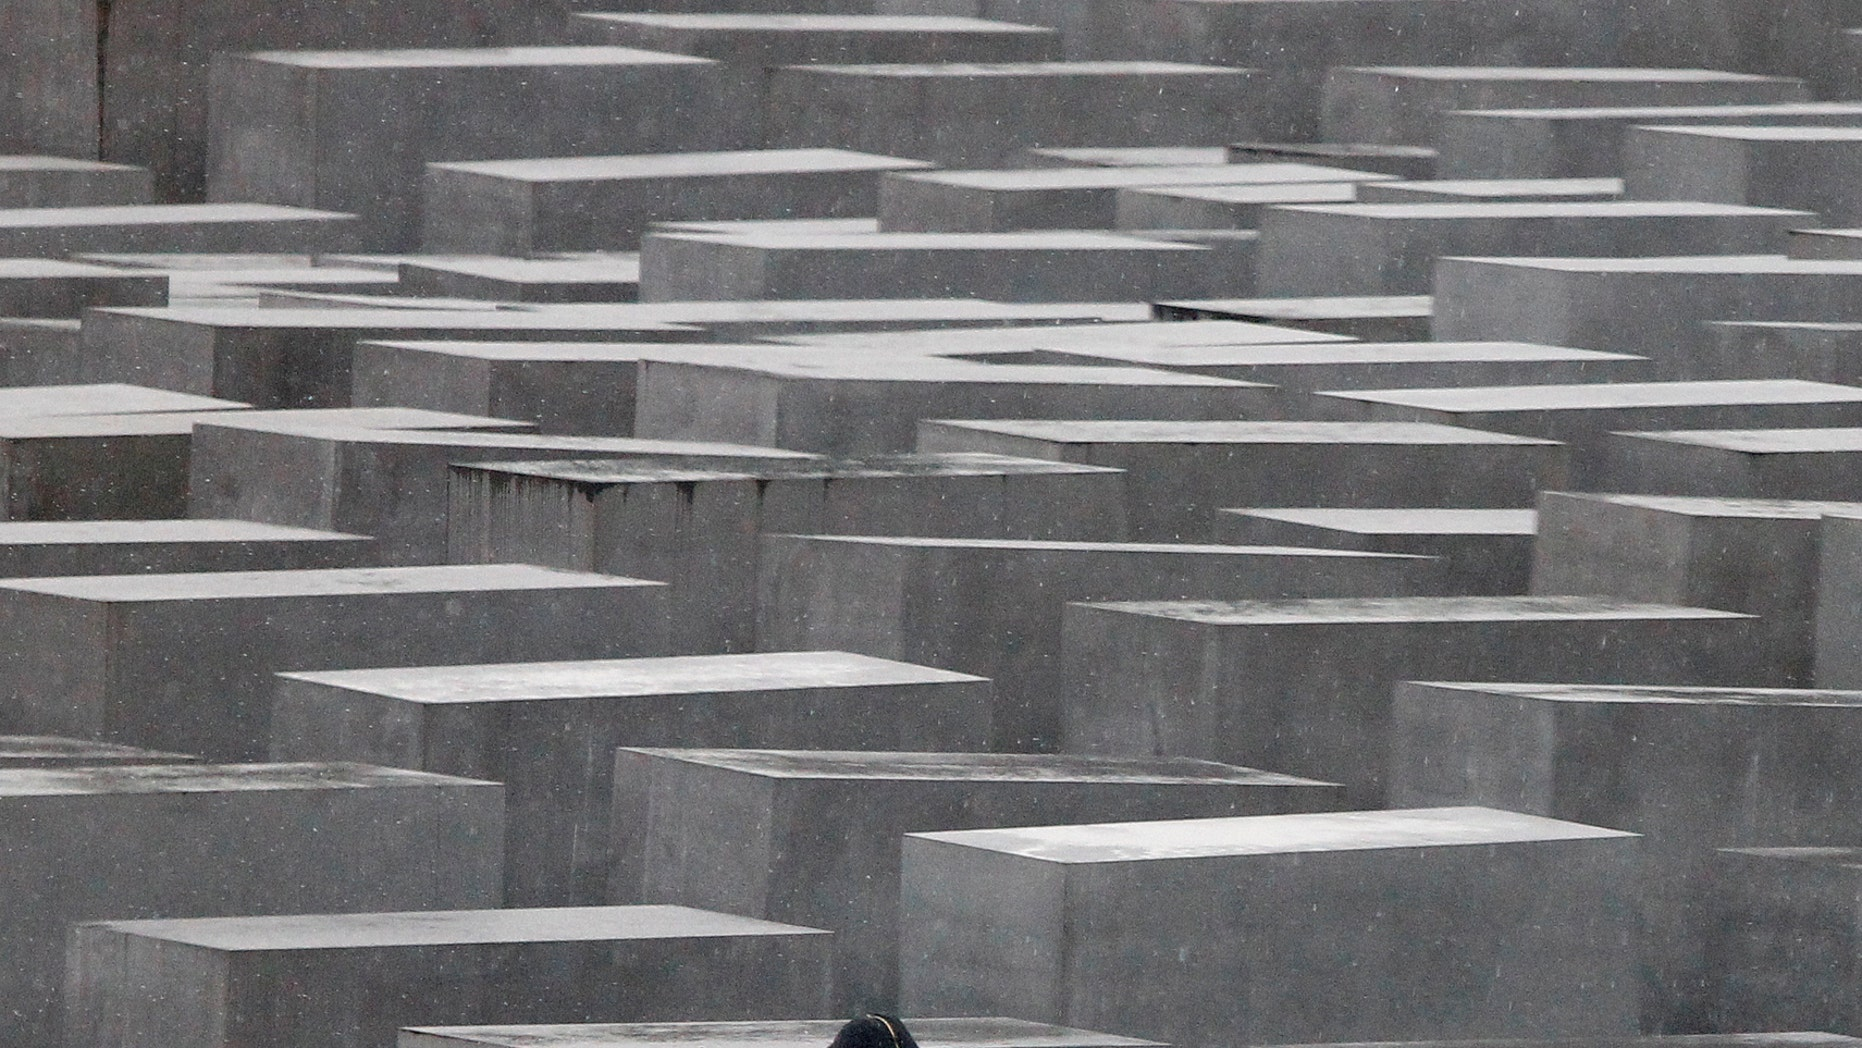 File photo - An unidentified youth jumps from one pillar to another at the Holocaust memorial in Berlin, March 3, 2010. The memorial to the murdered Jews of Europe consists of 2,711 charcoal-grey rectangular pillars, which rise from the ground and form a tight grid through which visitors can wander. (REUTERS/Tobias Schwarz)